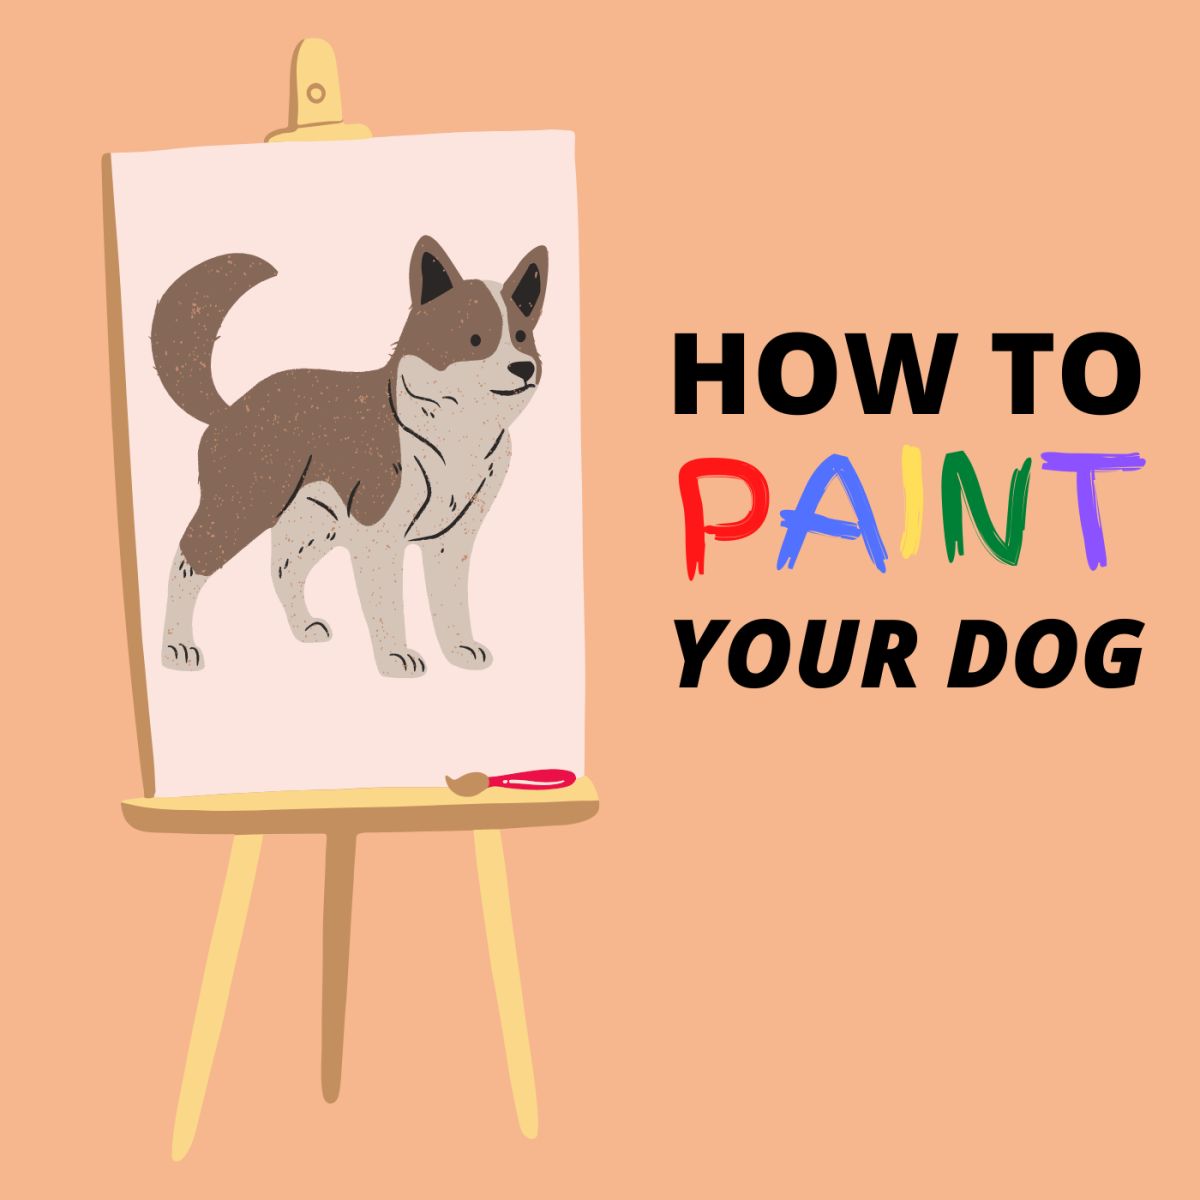 How to Paint a Picture of Your Dog